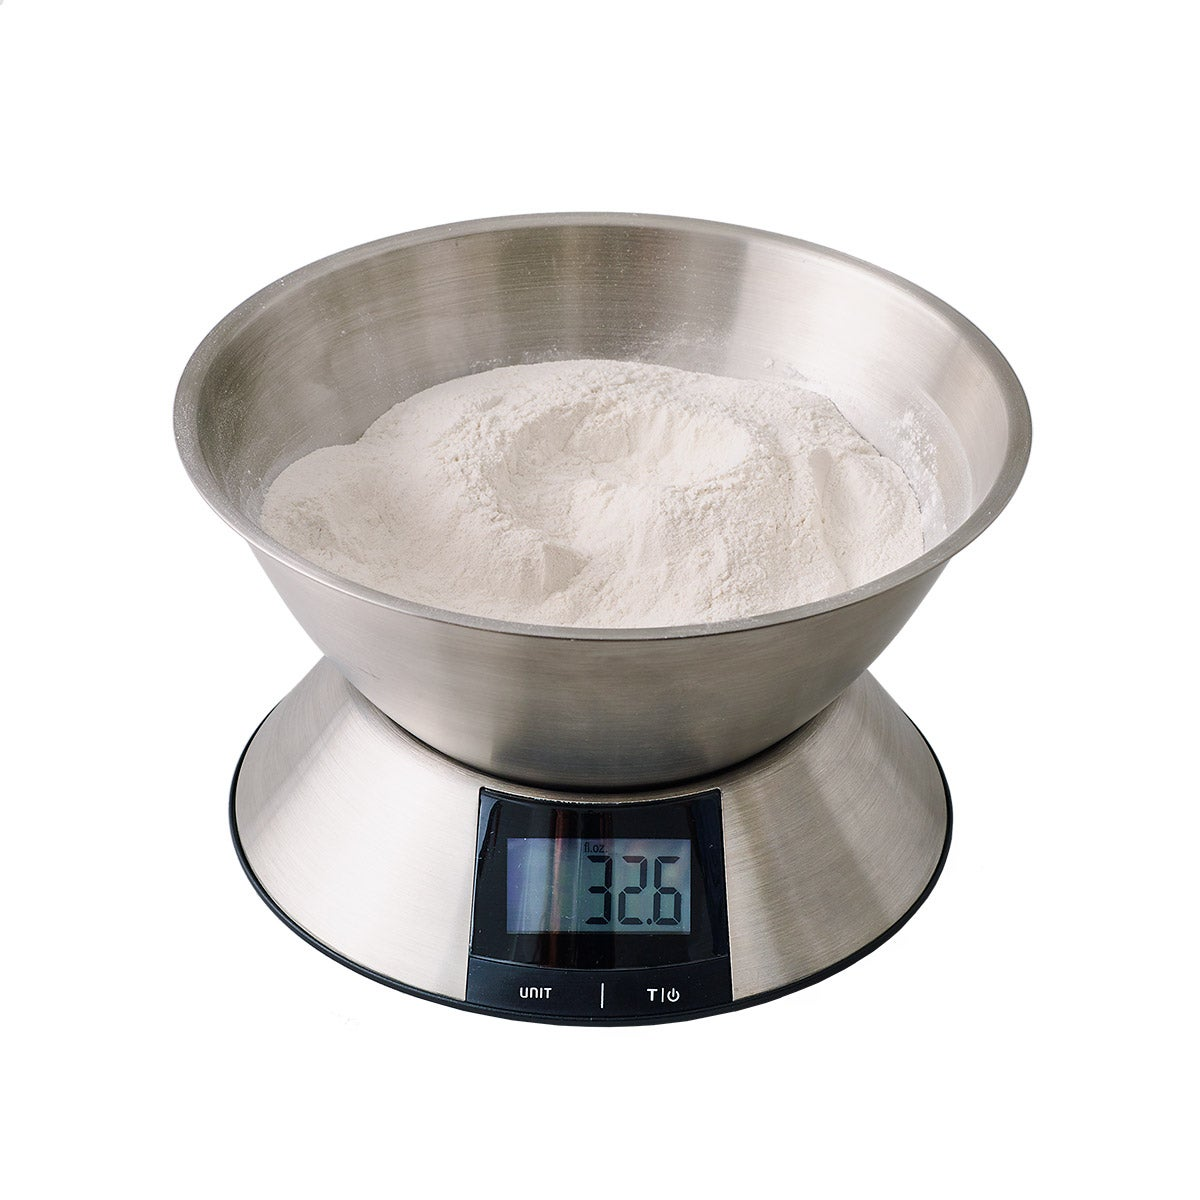 "5.43"" Digital Scale w/ Removable Bowl"